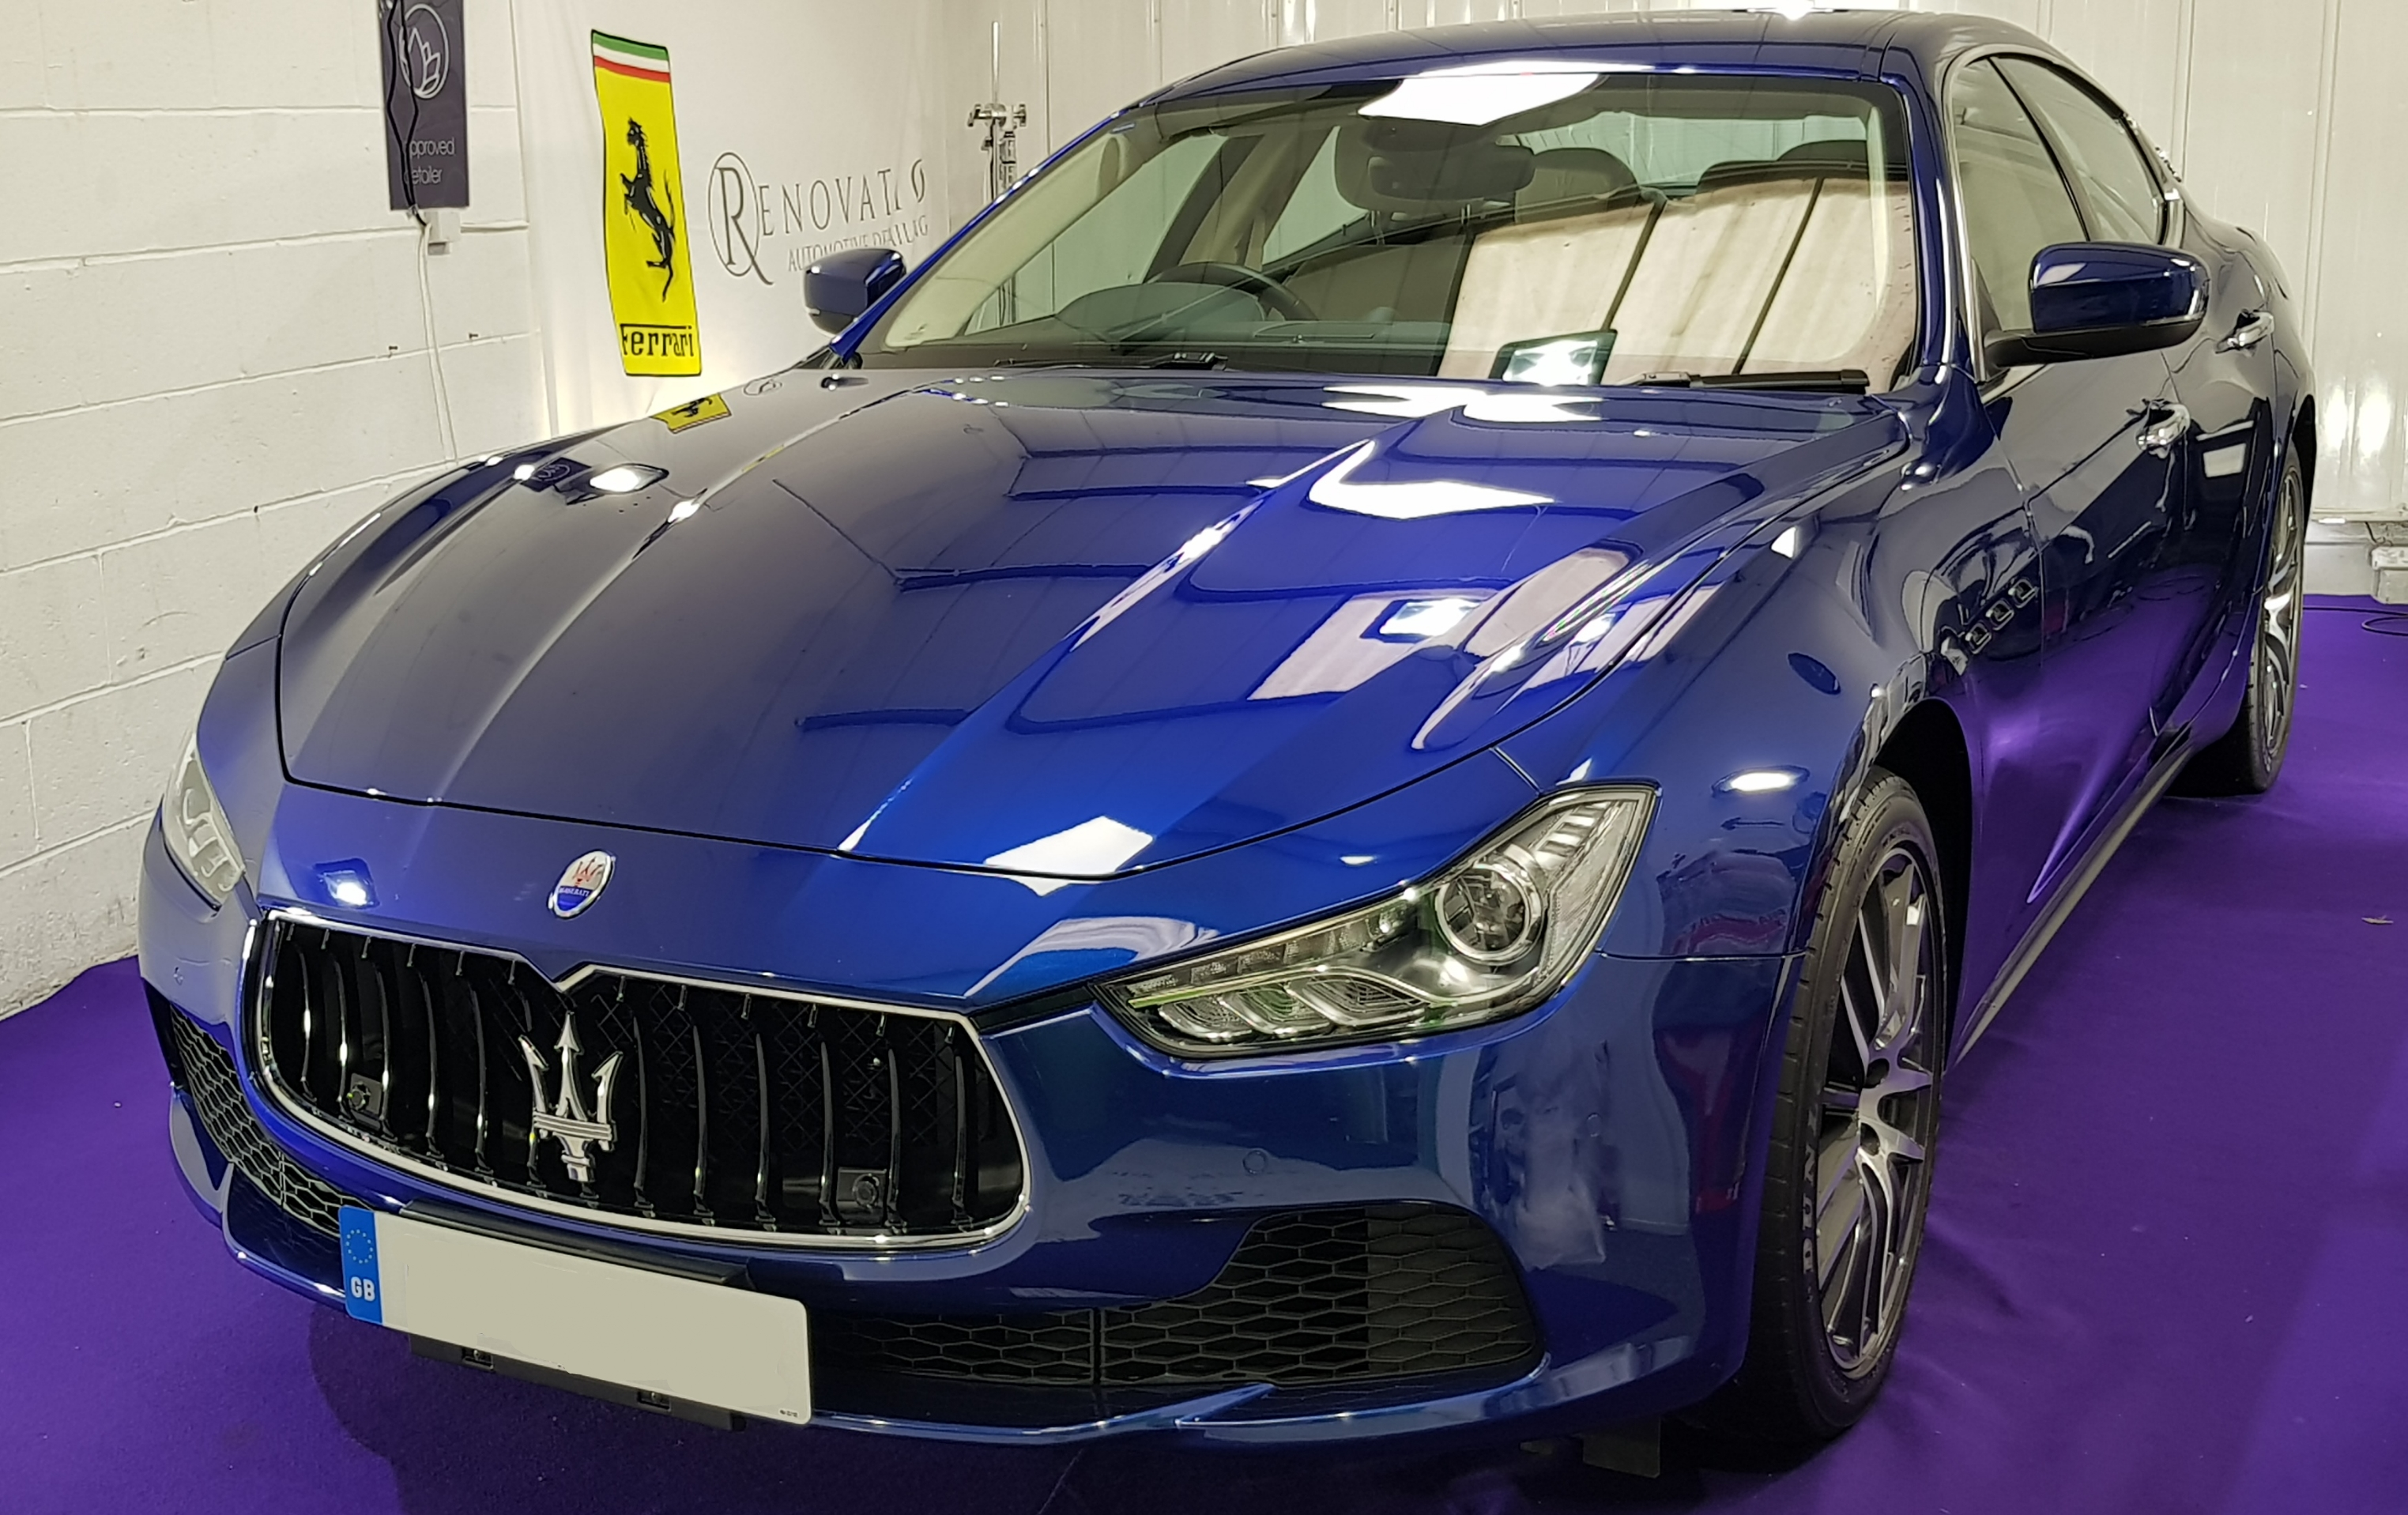 Maserati Ghibli Wax protection